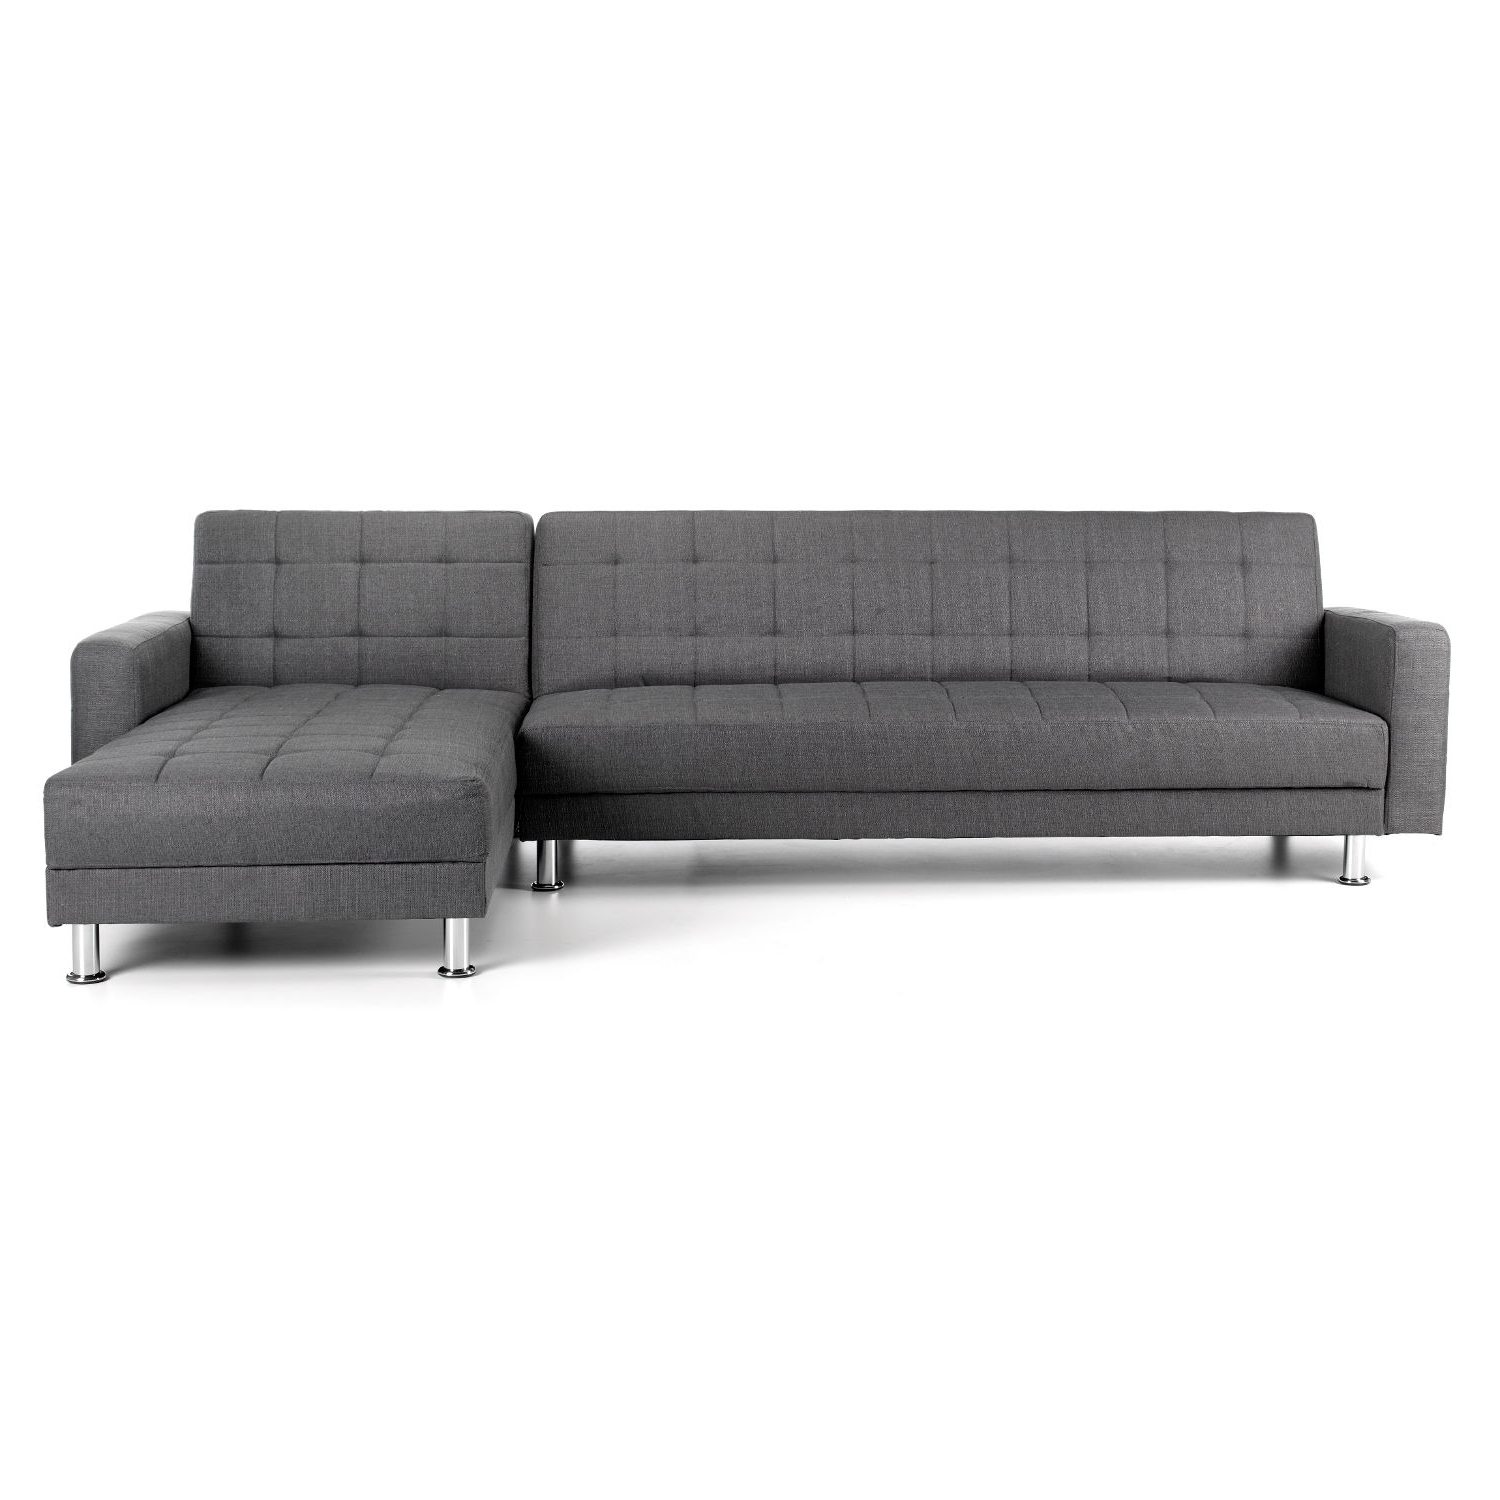 Chaise Sofa Beds Throughout Newest Spencer Fabric Corner Chaise Sofa Bed – Next Day Delivery Spencer (View 6 of 15)